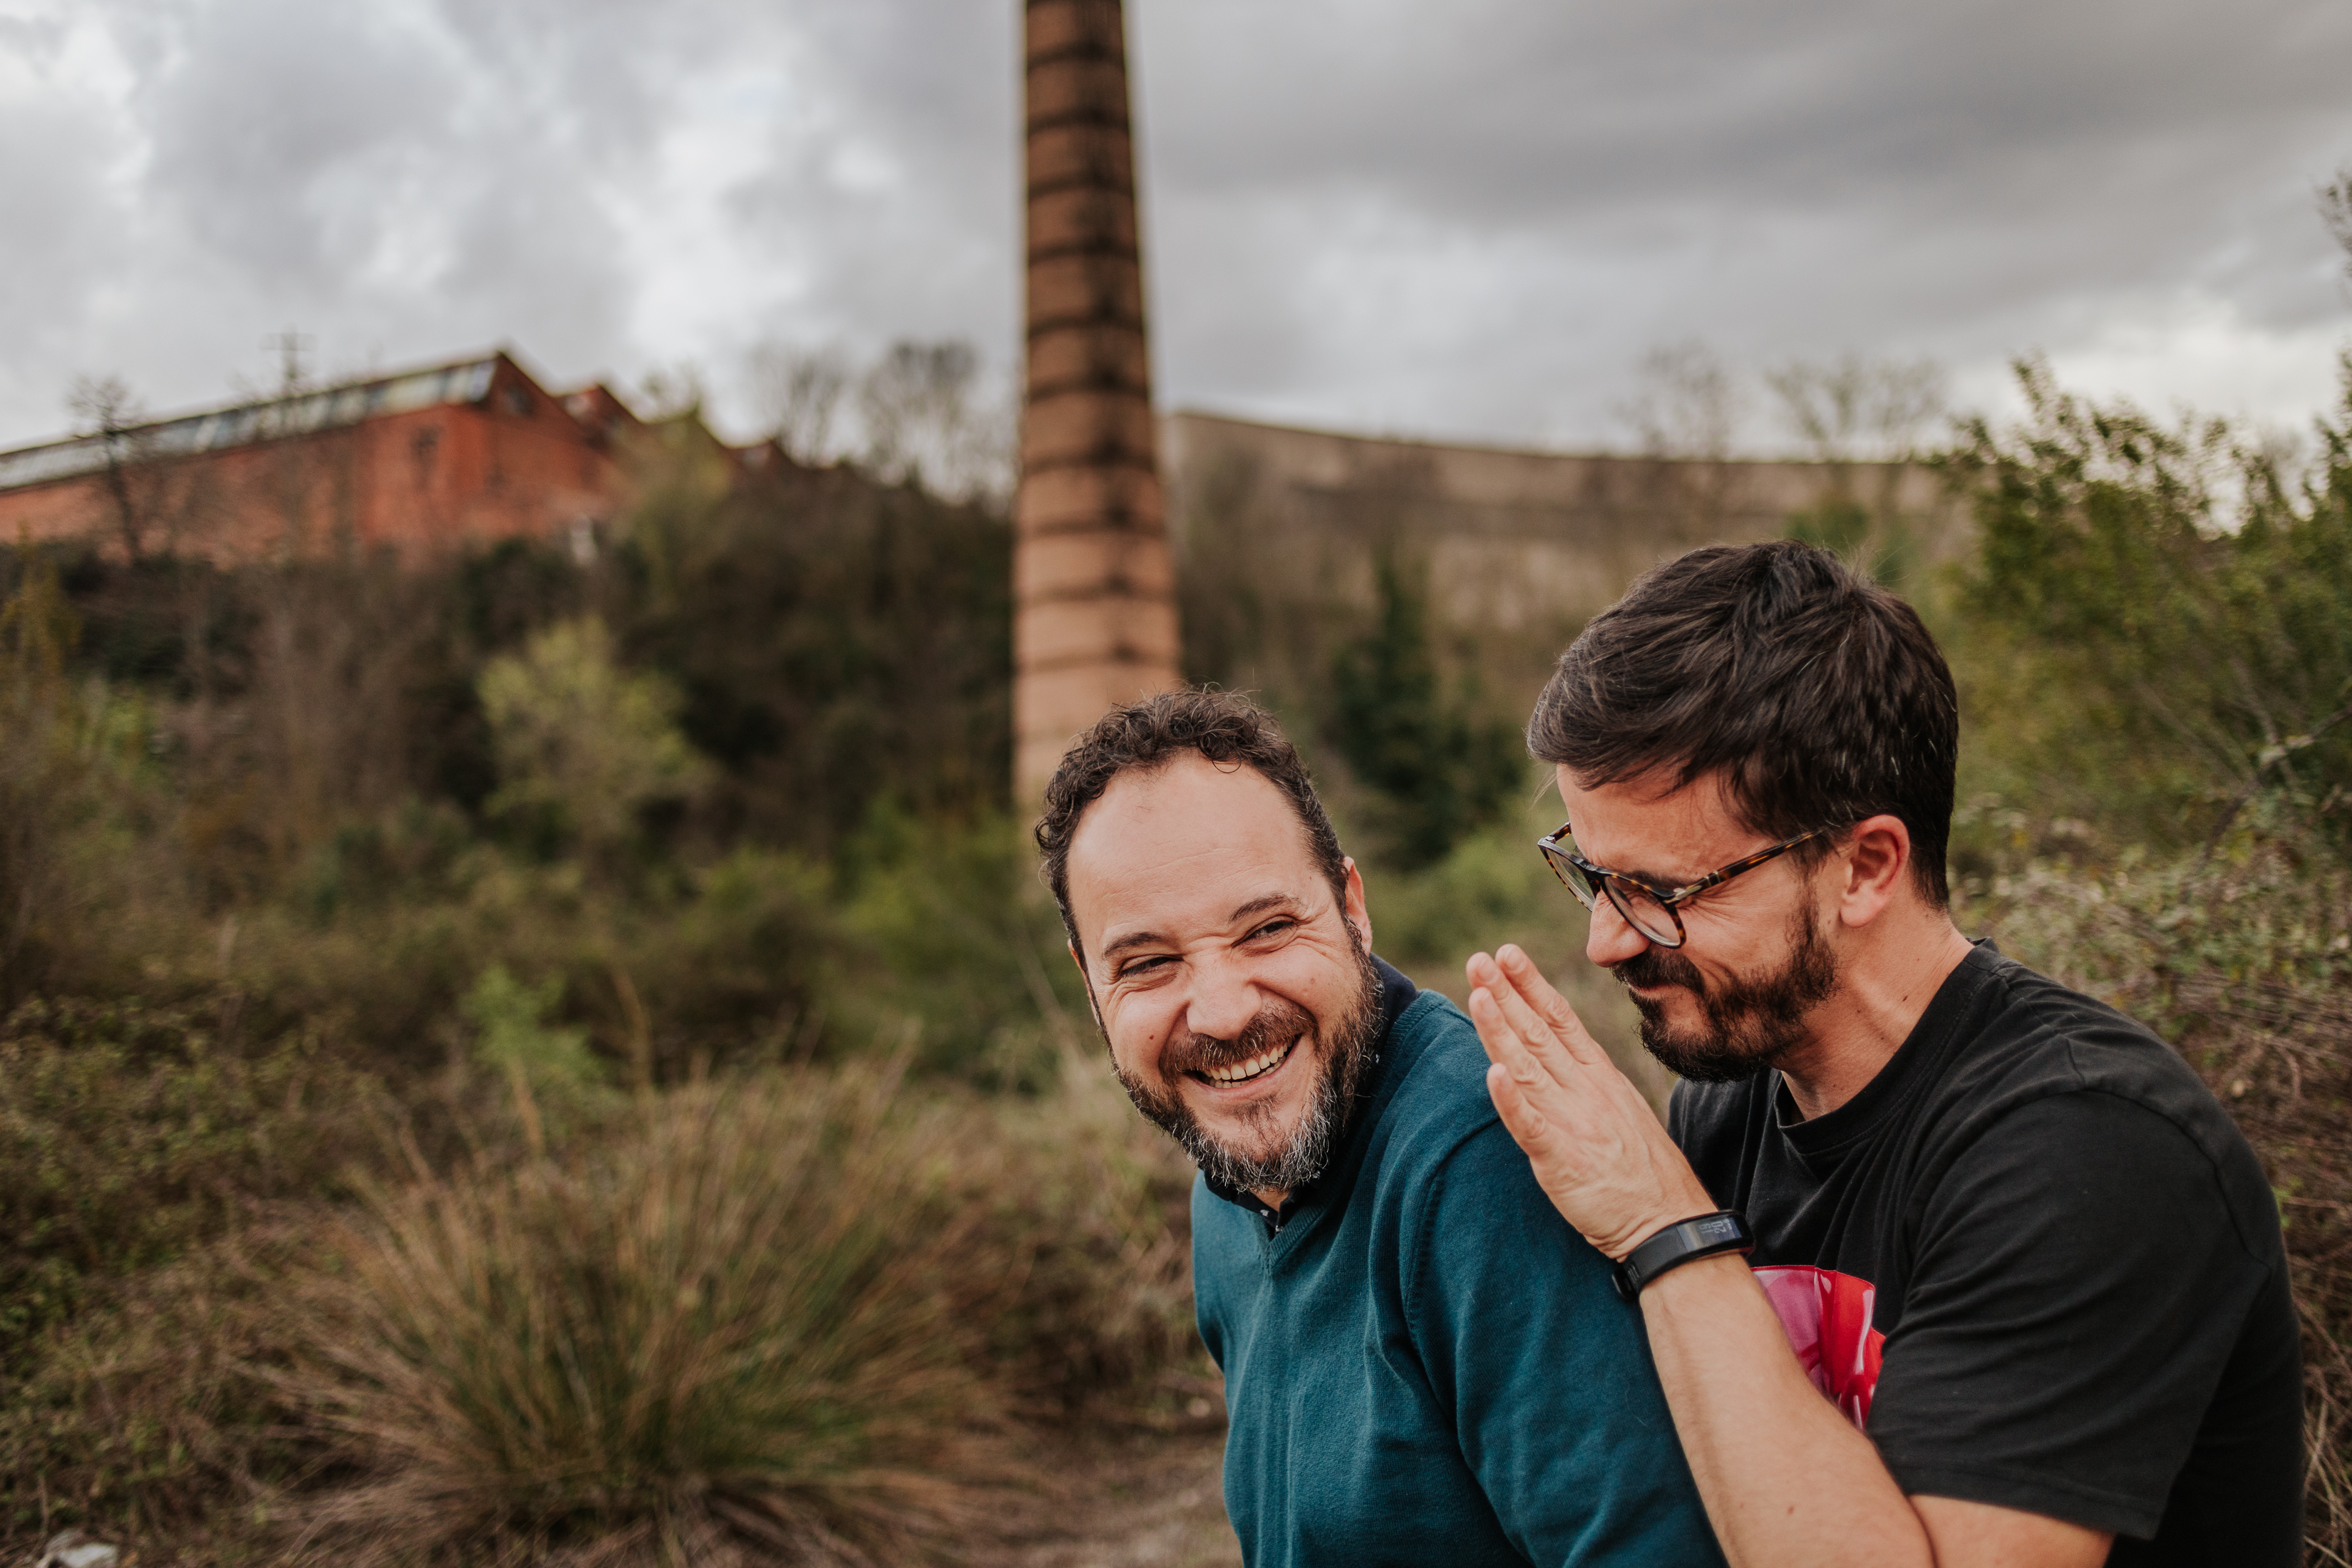 Fotógrafo pareja gay :: Preboda en Sabadell :: Reportaje de pareja Sabadell :: Wedding photographer :: Barcelona gay wedding photographer :: Reportaje pareja Sabadell :: Preboda informal